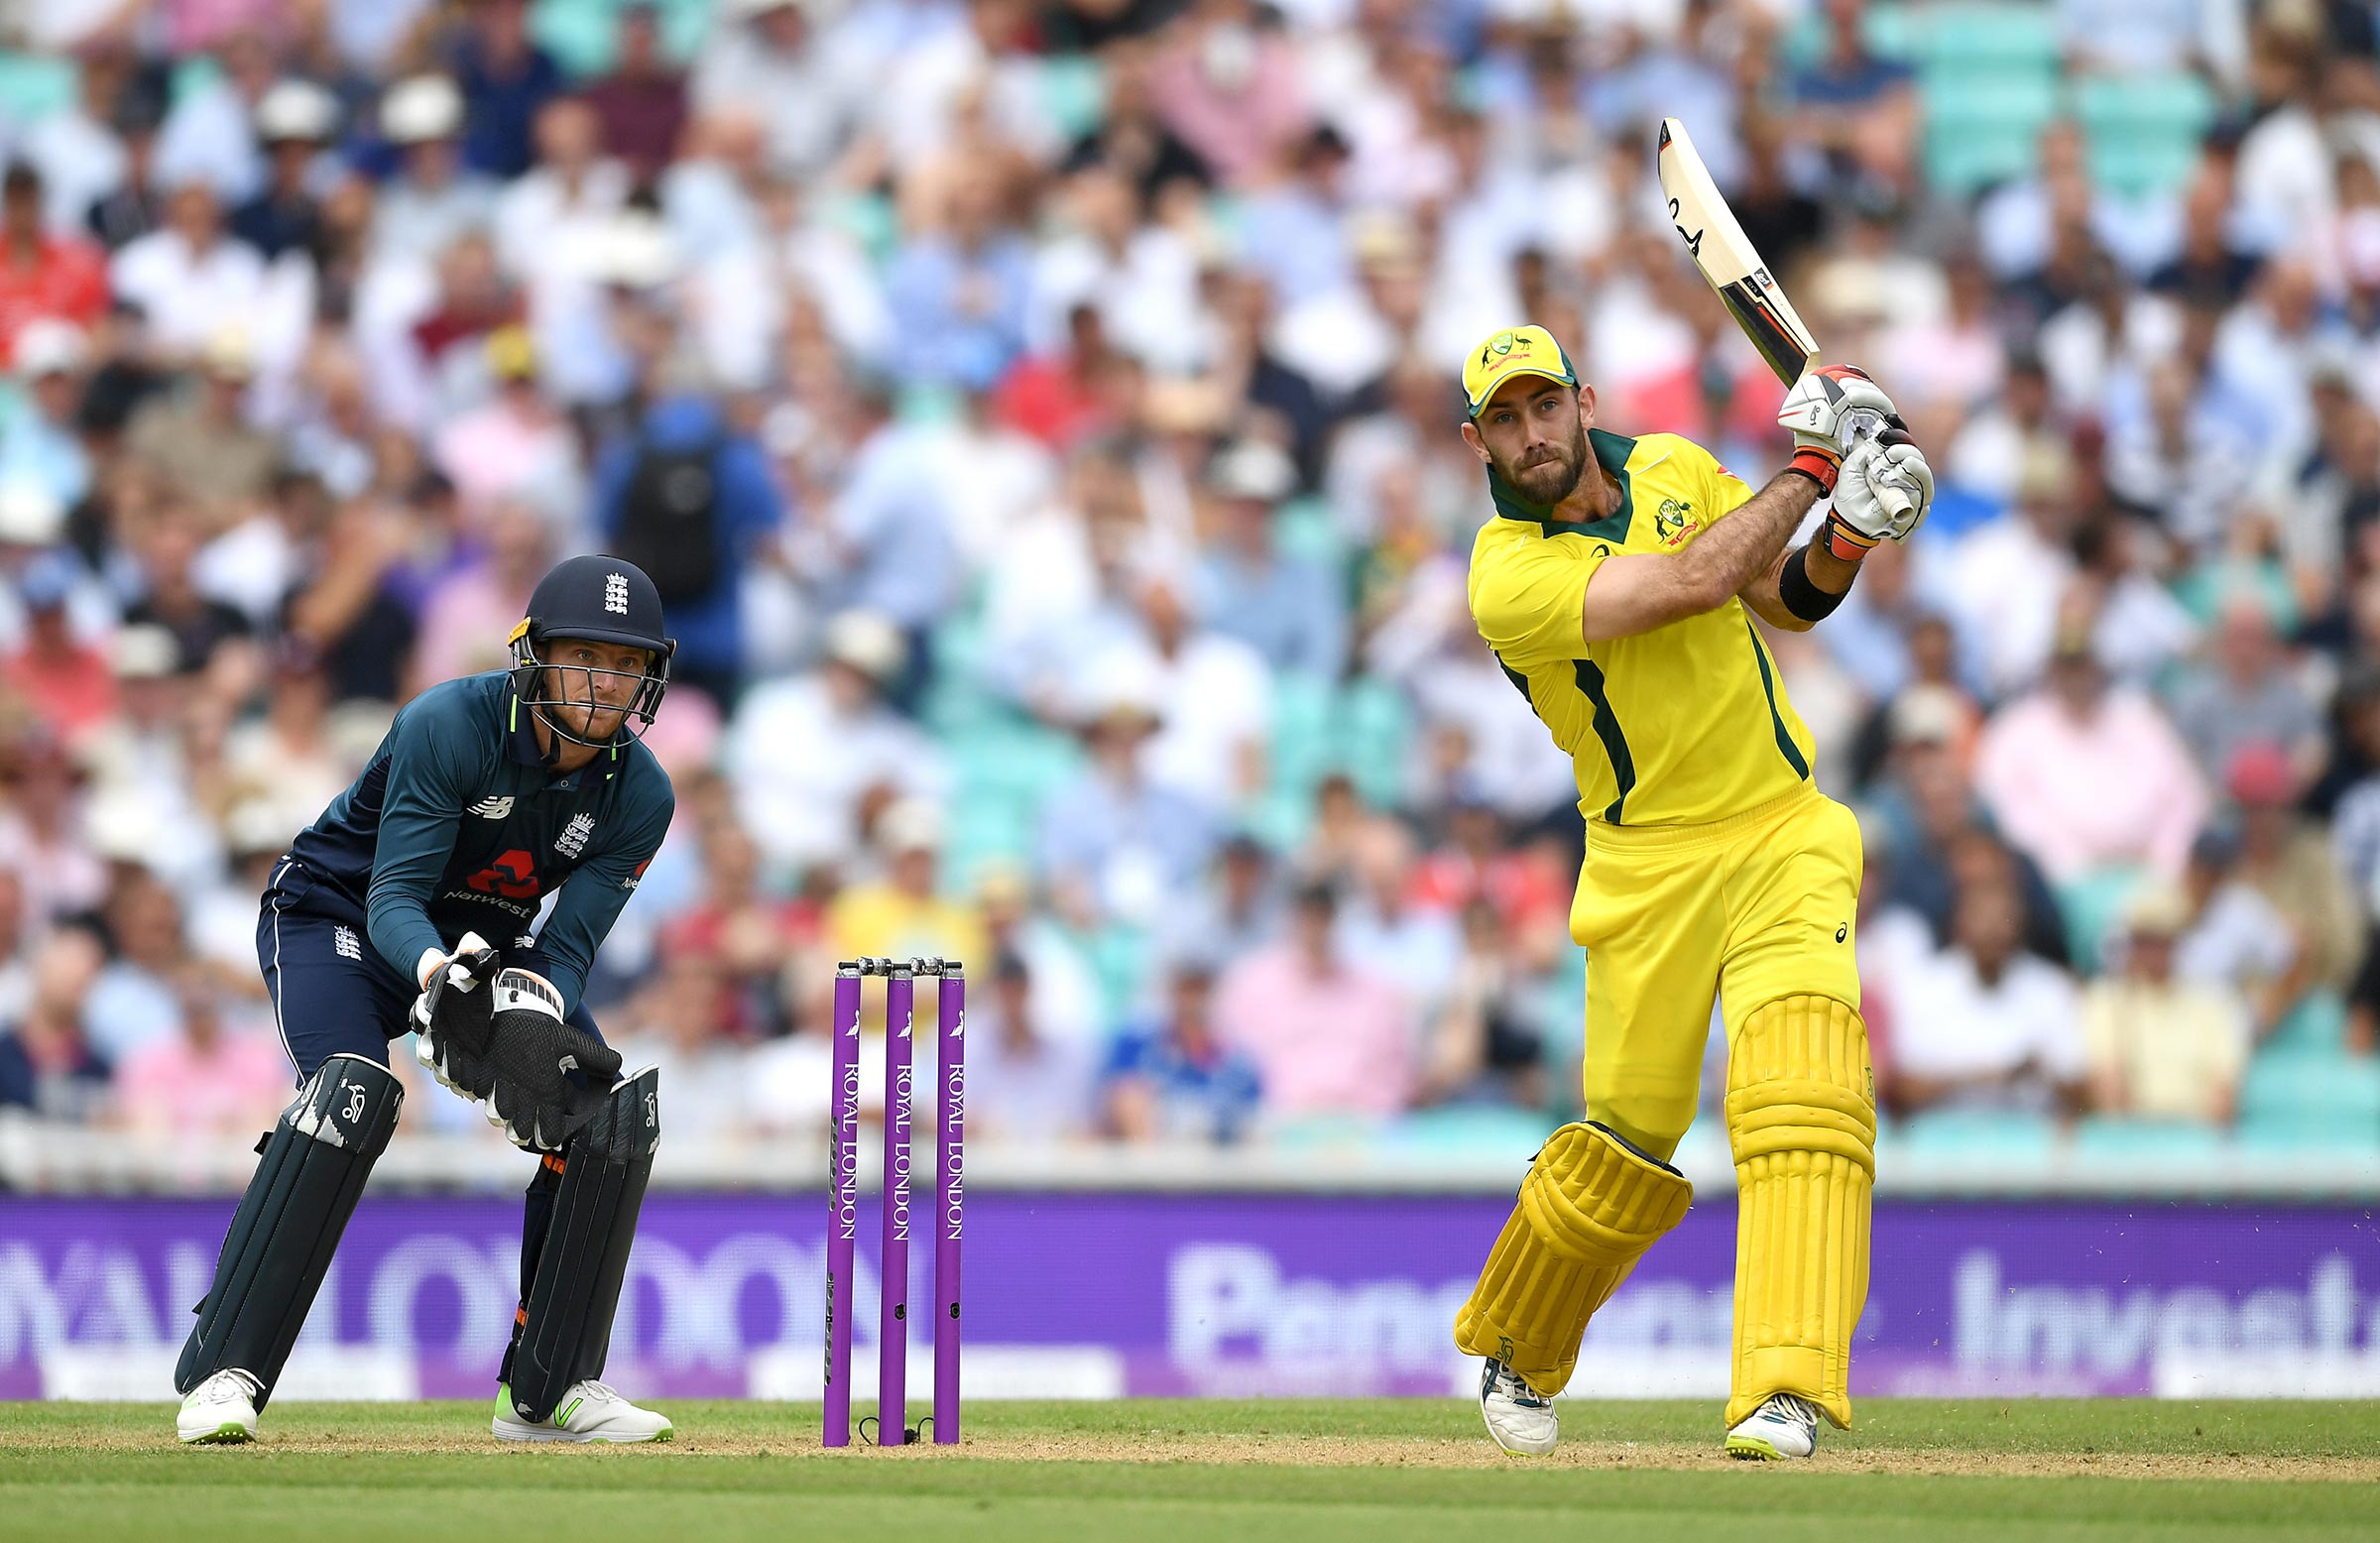 Maxwell eyes another boundary // Getty